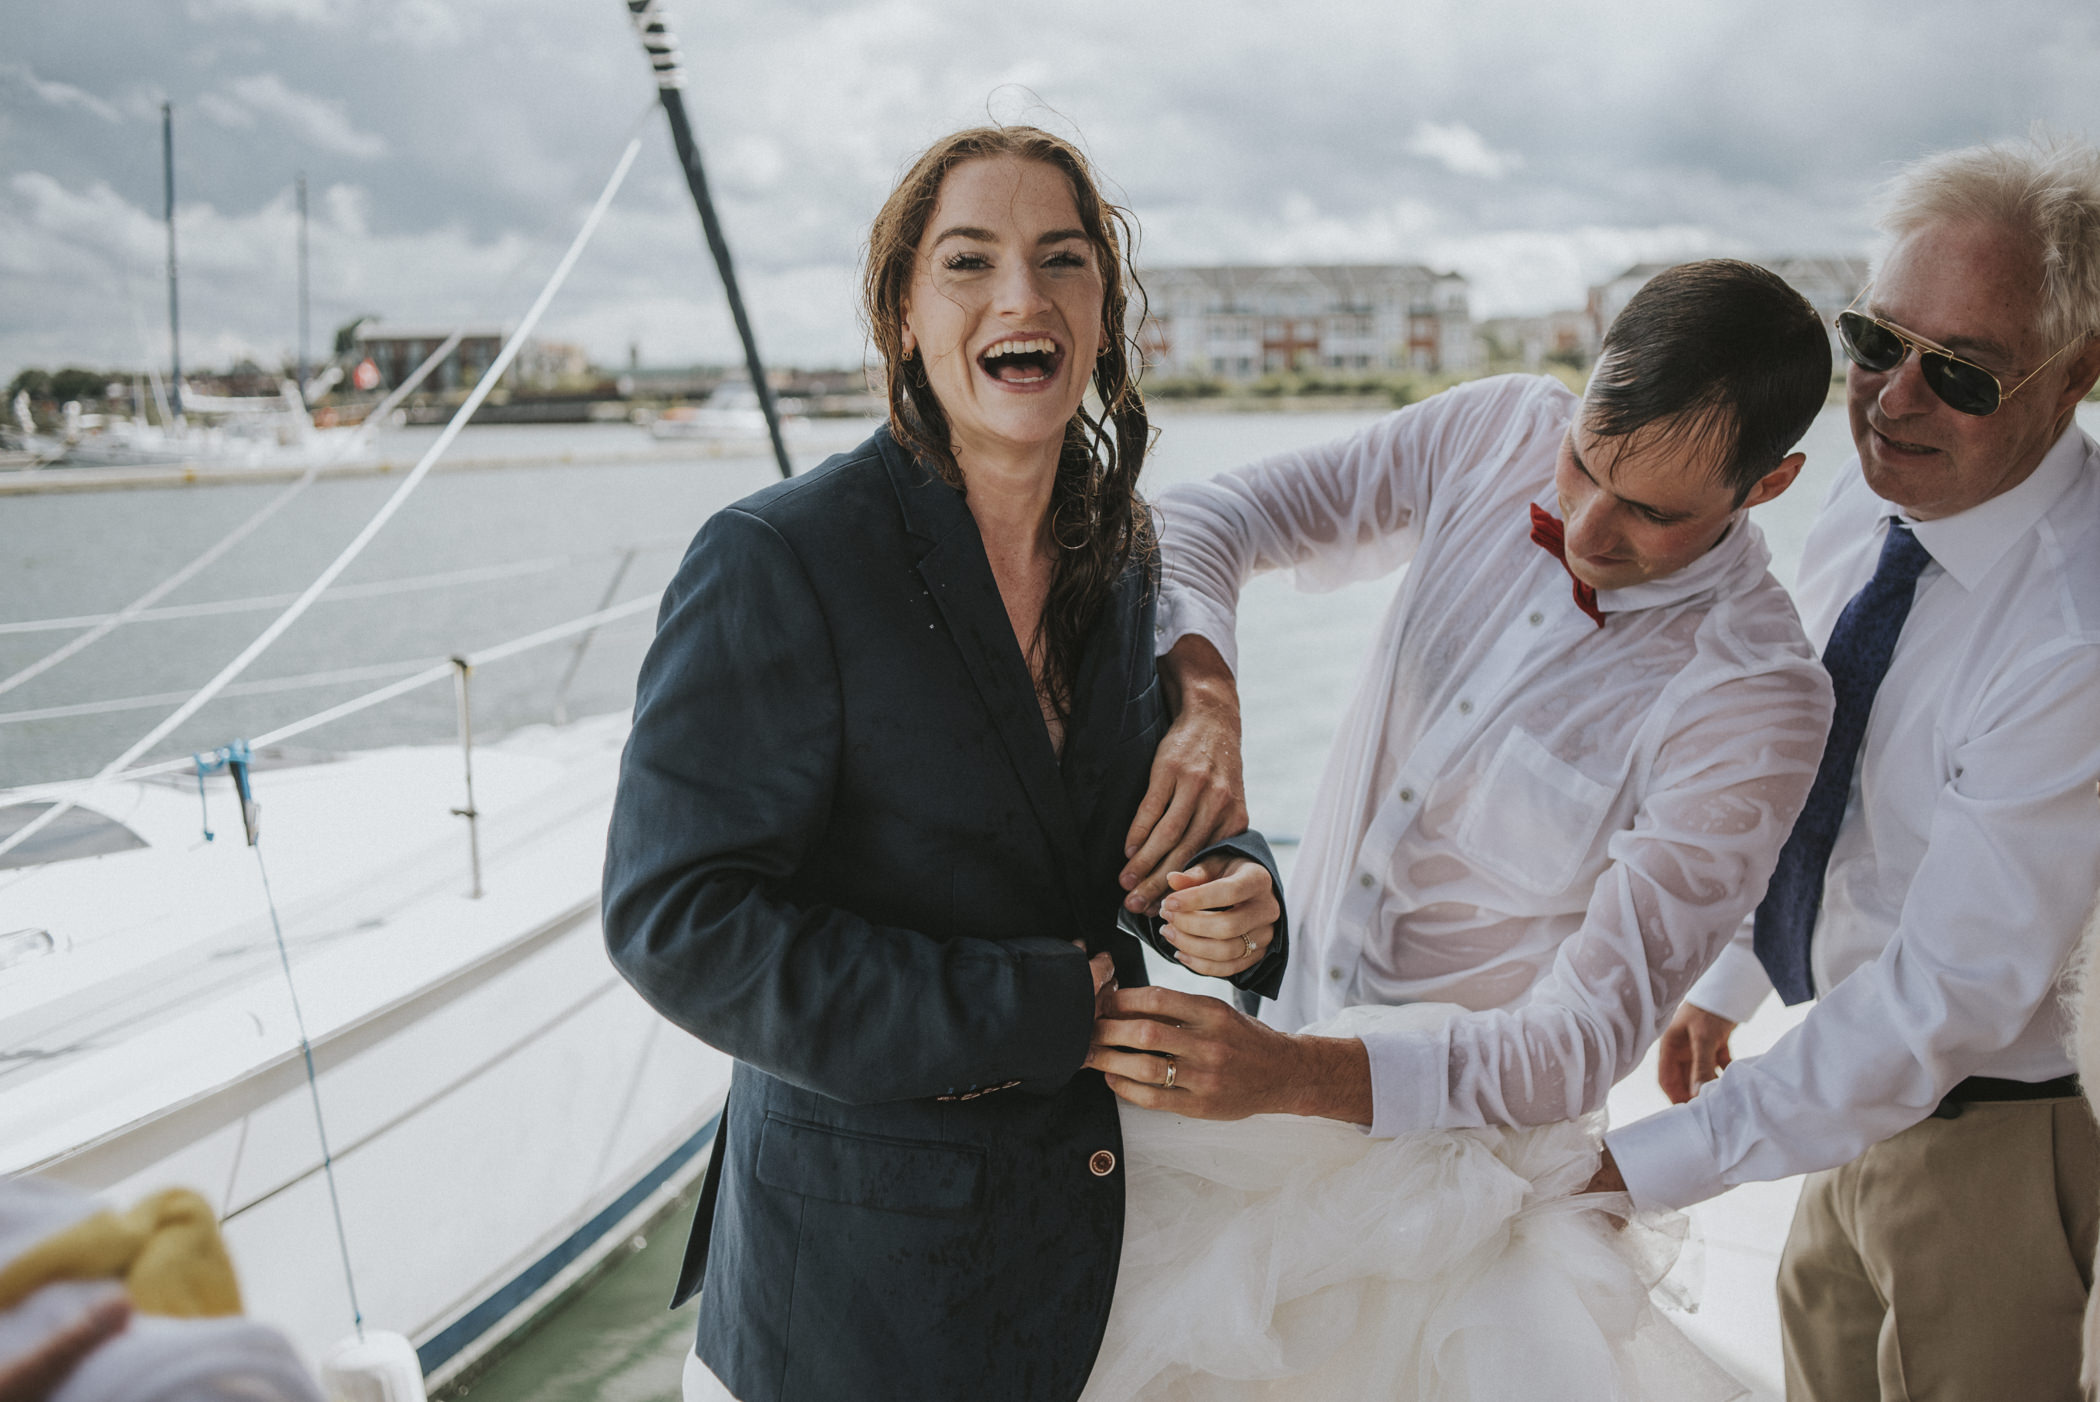 Groom putting suit jacket on soaked bride.